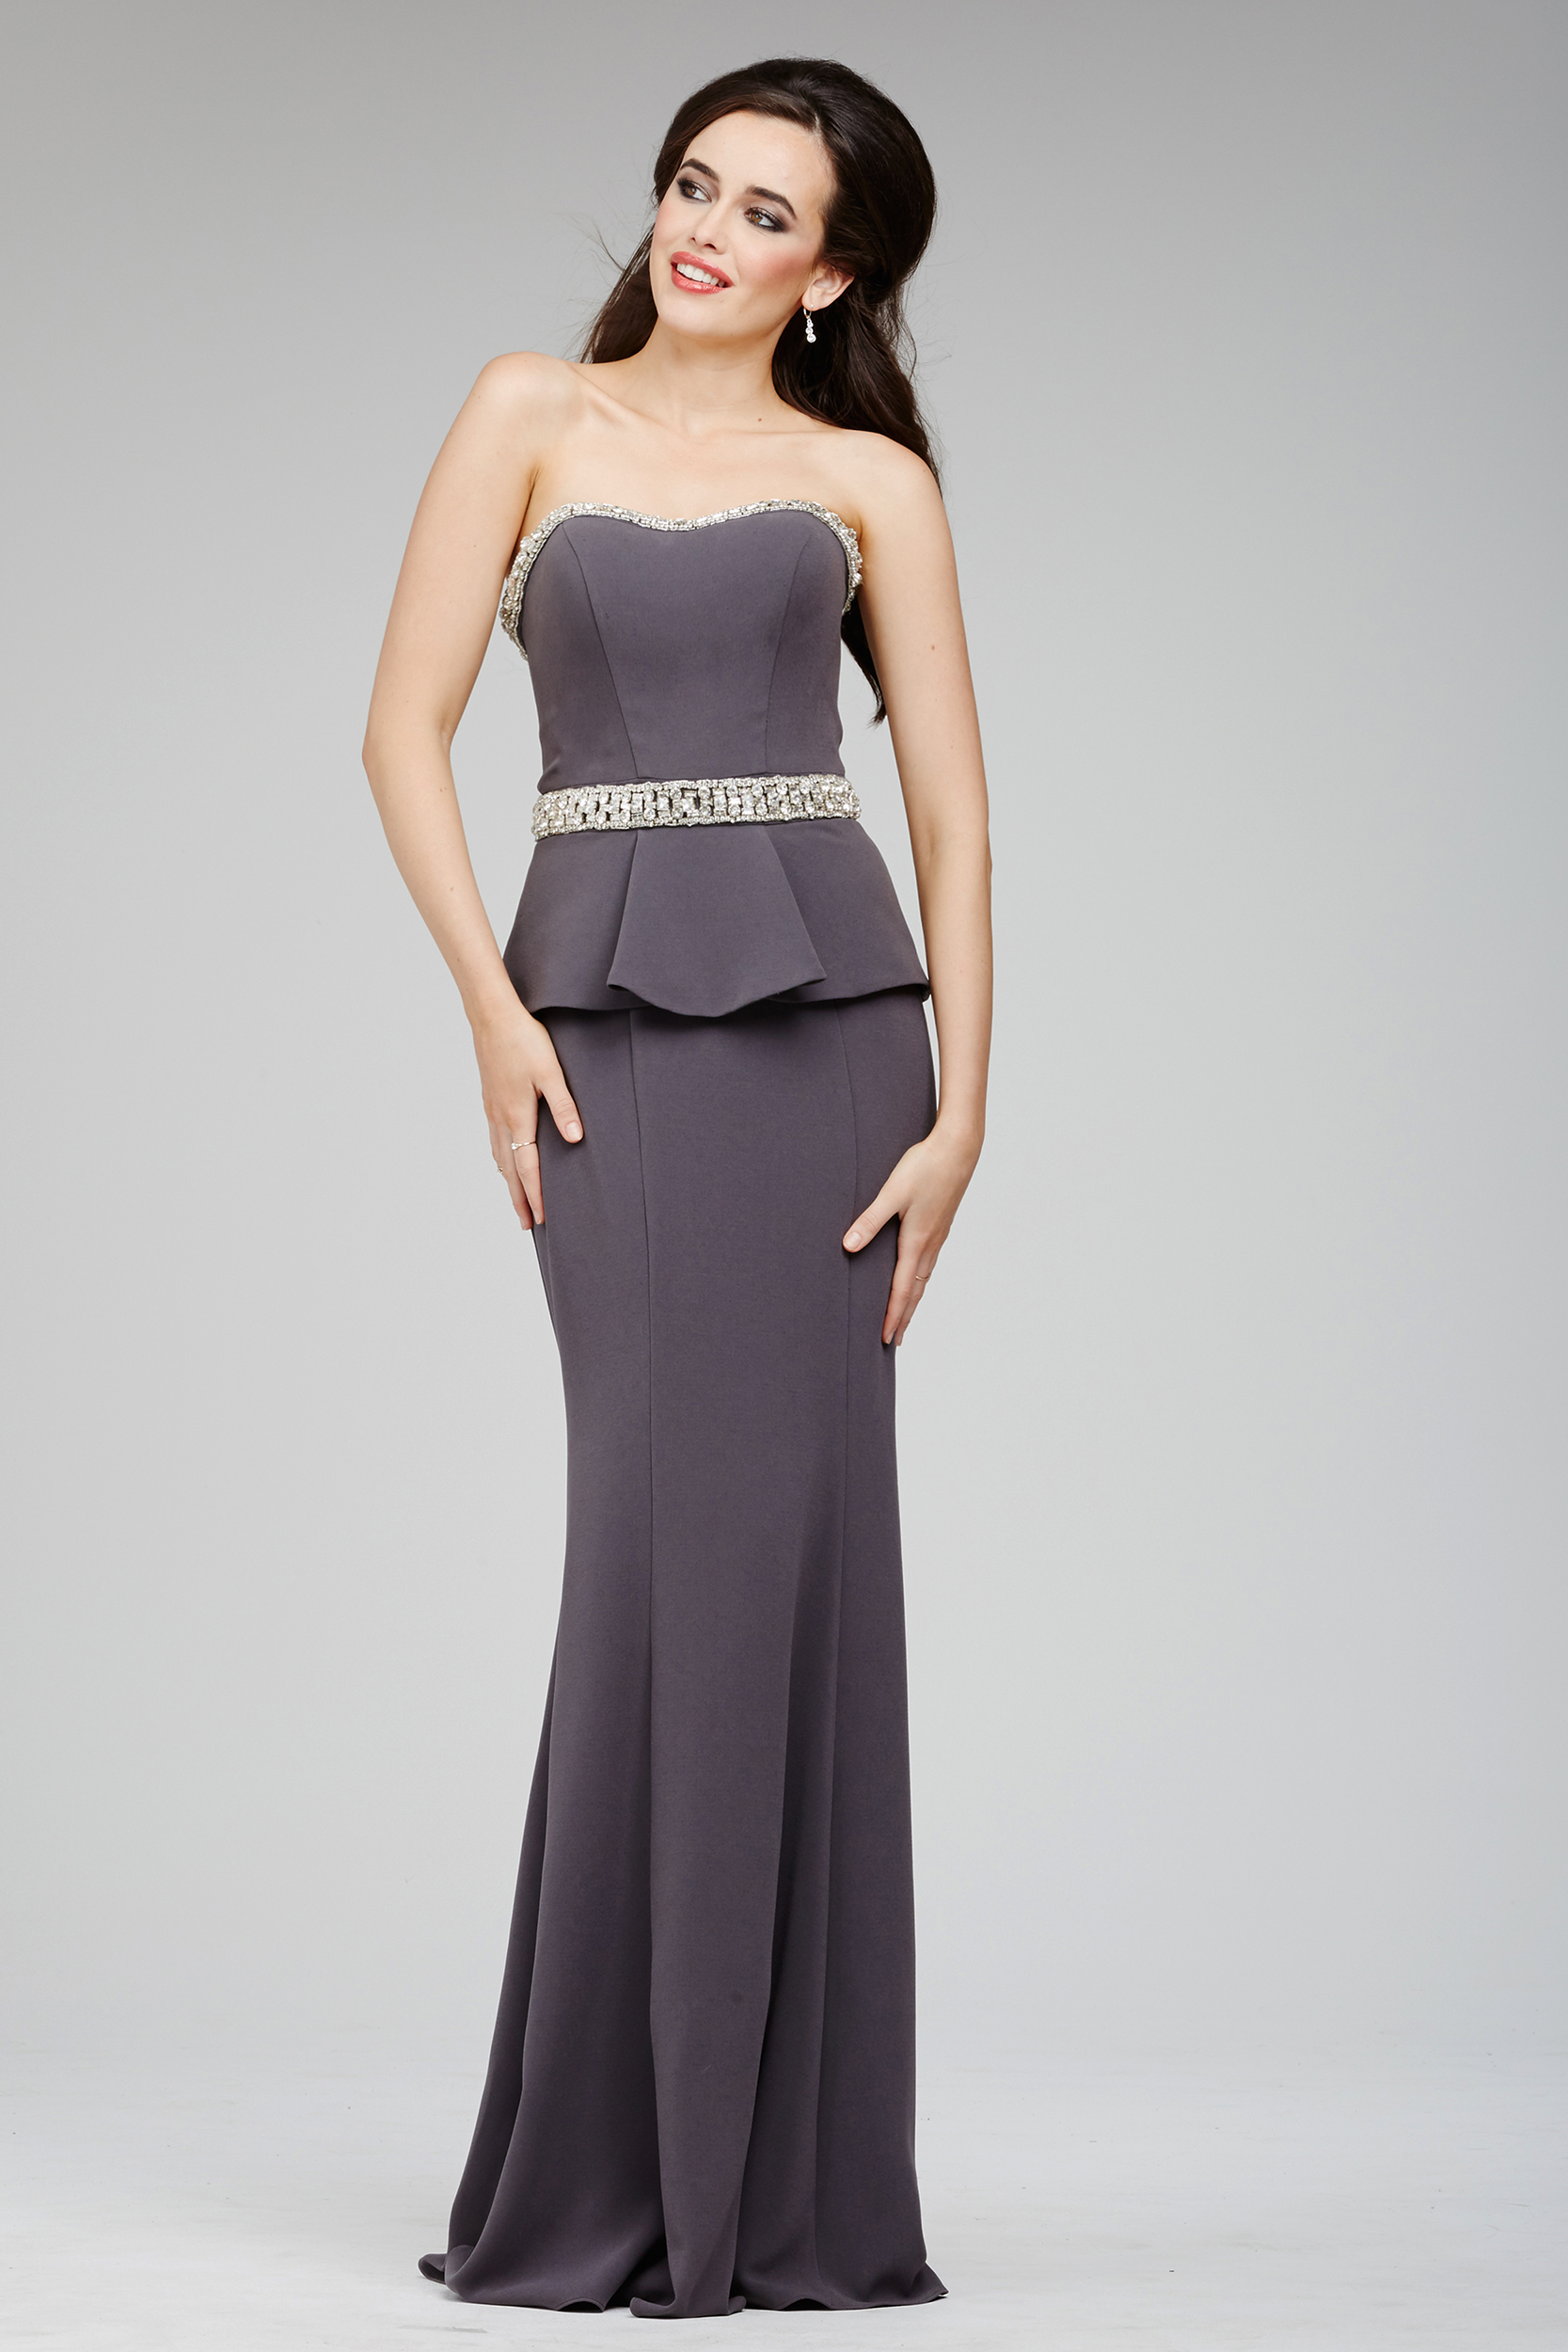 Jovani 98012 Evening Dress Strapless Bejeweled Neckline Peplum ...